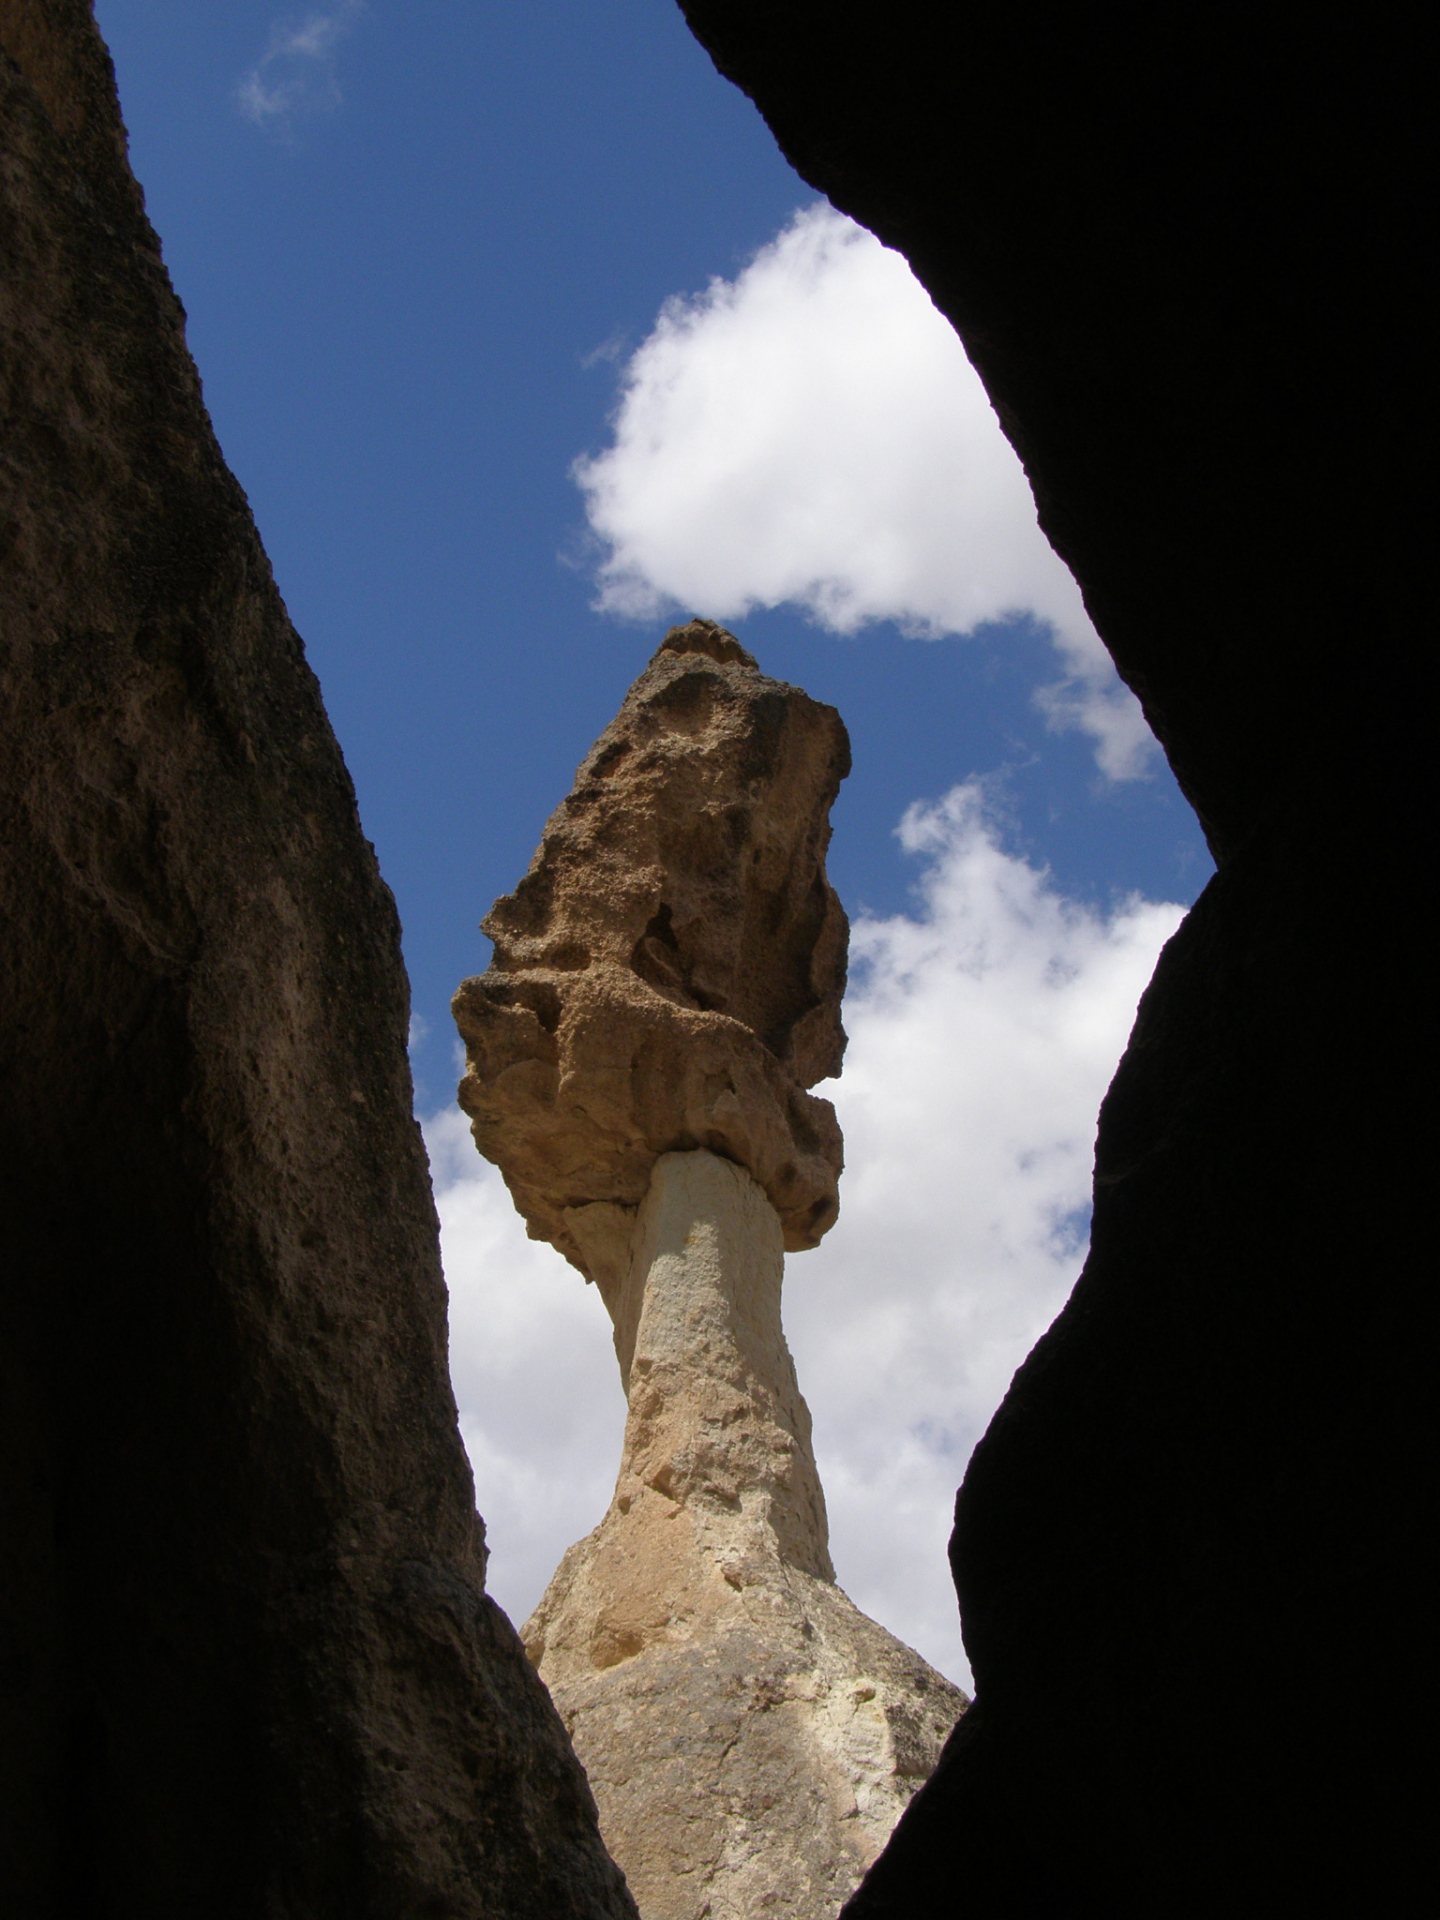 Cappadocia features thousands of fascinating rock formations, including this fairy chimney. Turkey: annmariemershon.com